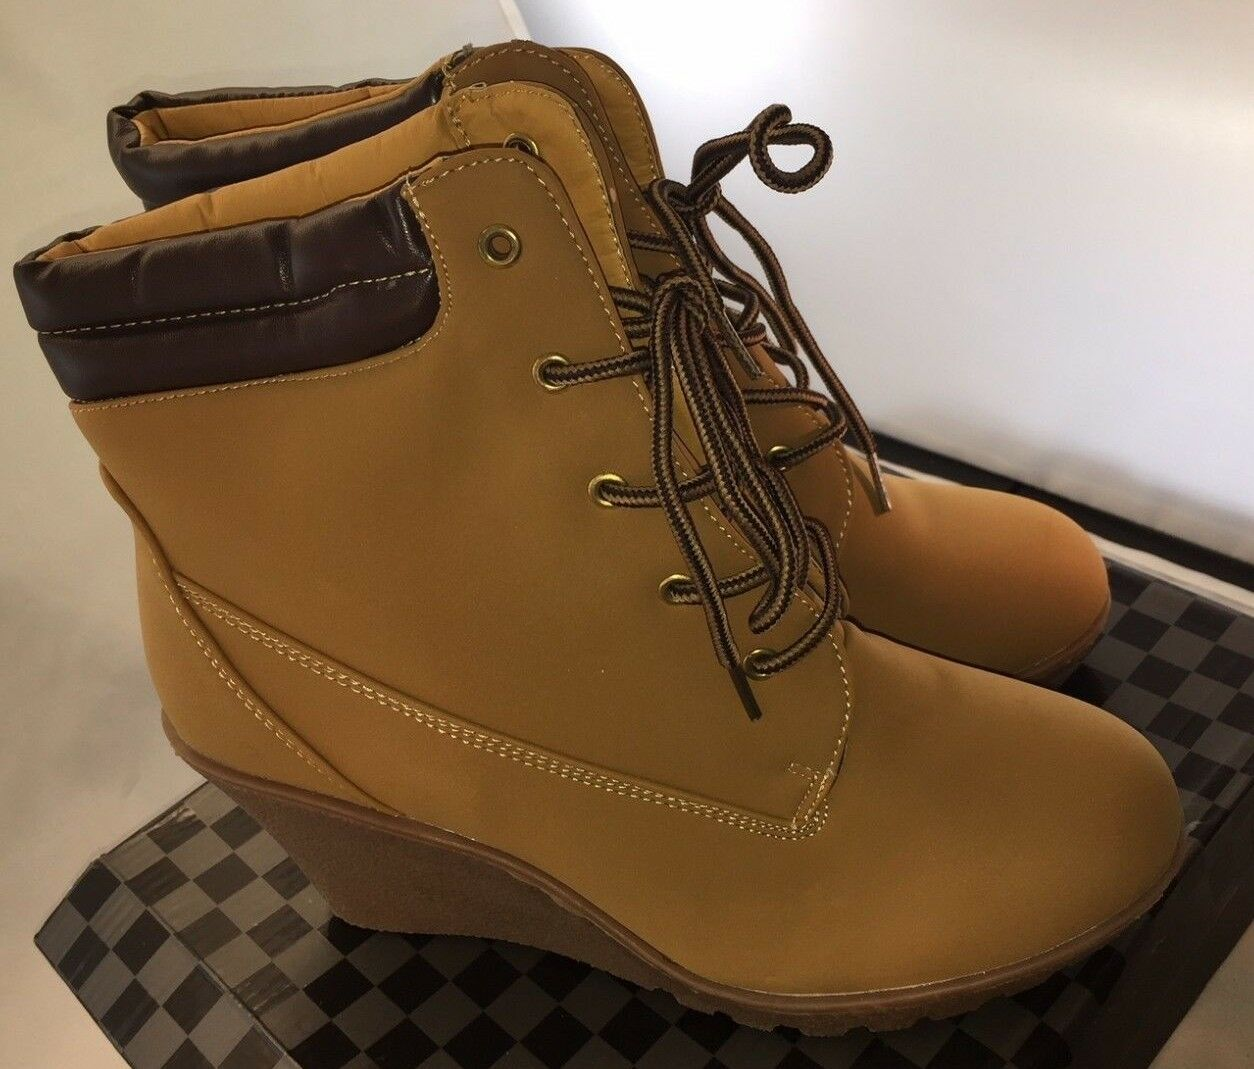 NIB CA Collection Carrini Women's Wedge Work Style Fashion Boots Wheat Size 10